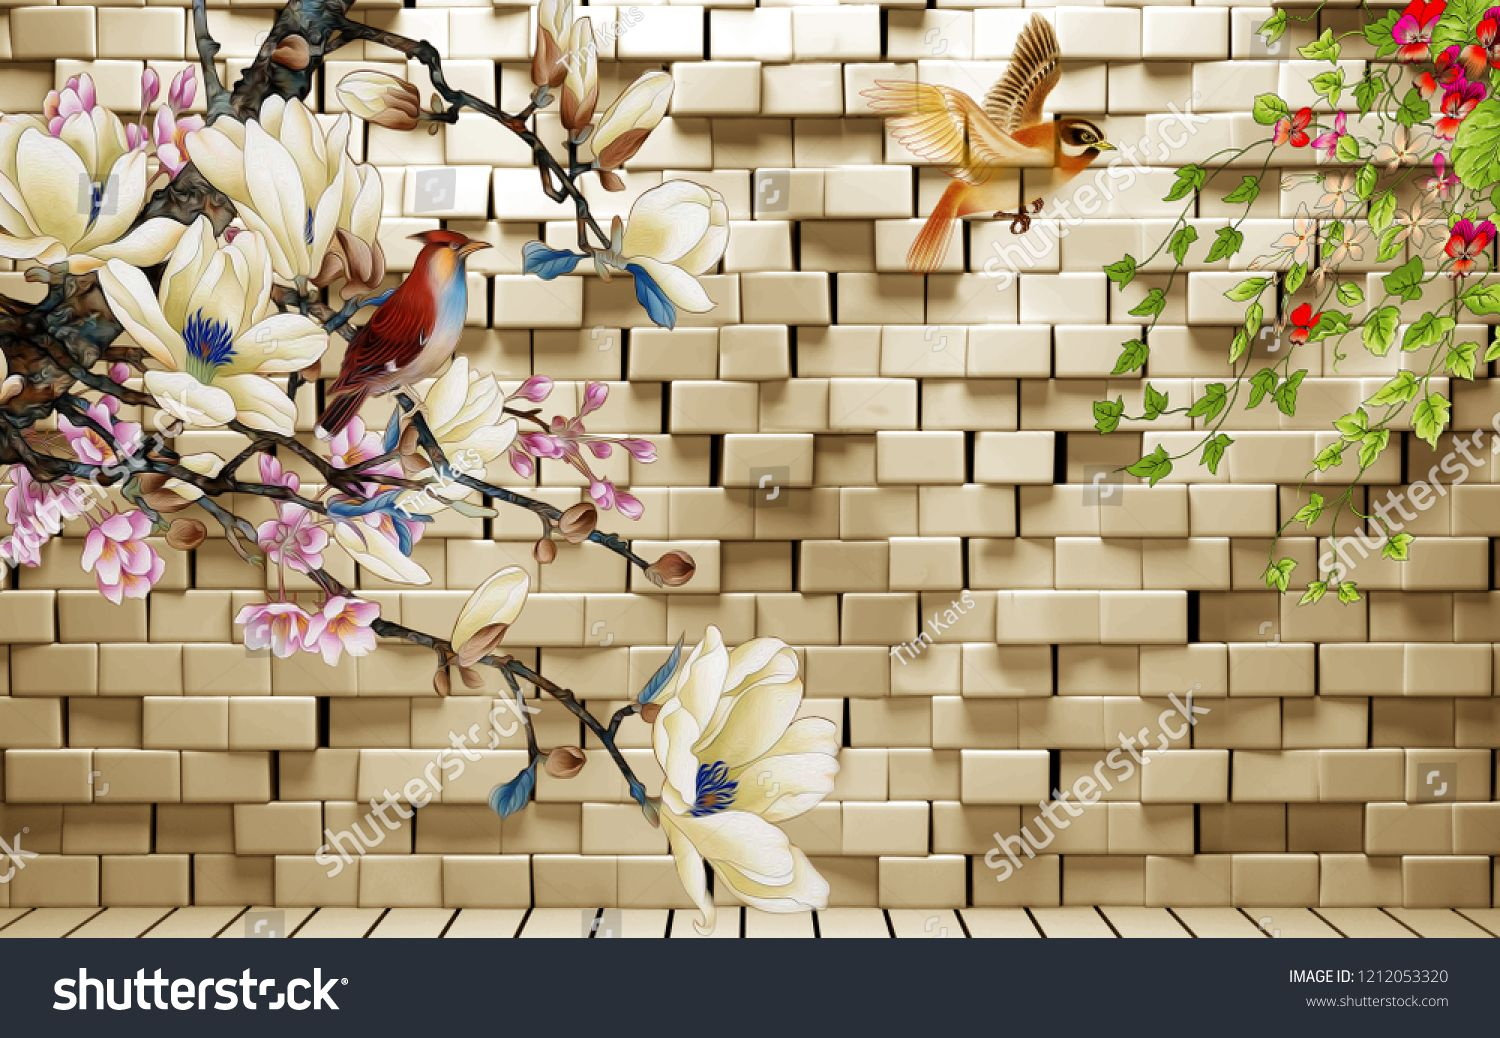 3d Illustration Background With White Brick Wall Warm Illumination Birds And Fabulous Flowers Brick Business Icons Design 3d Illustration White Brick Walls